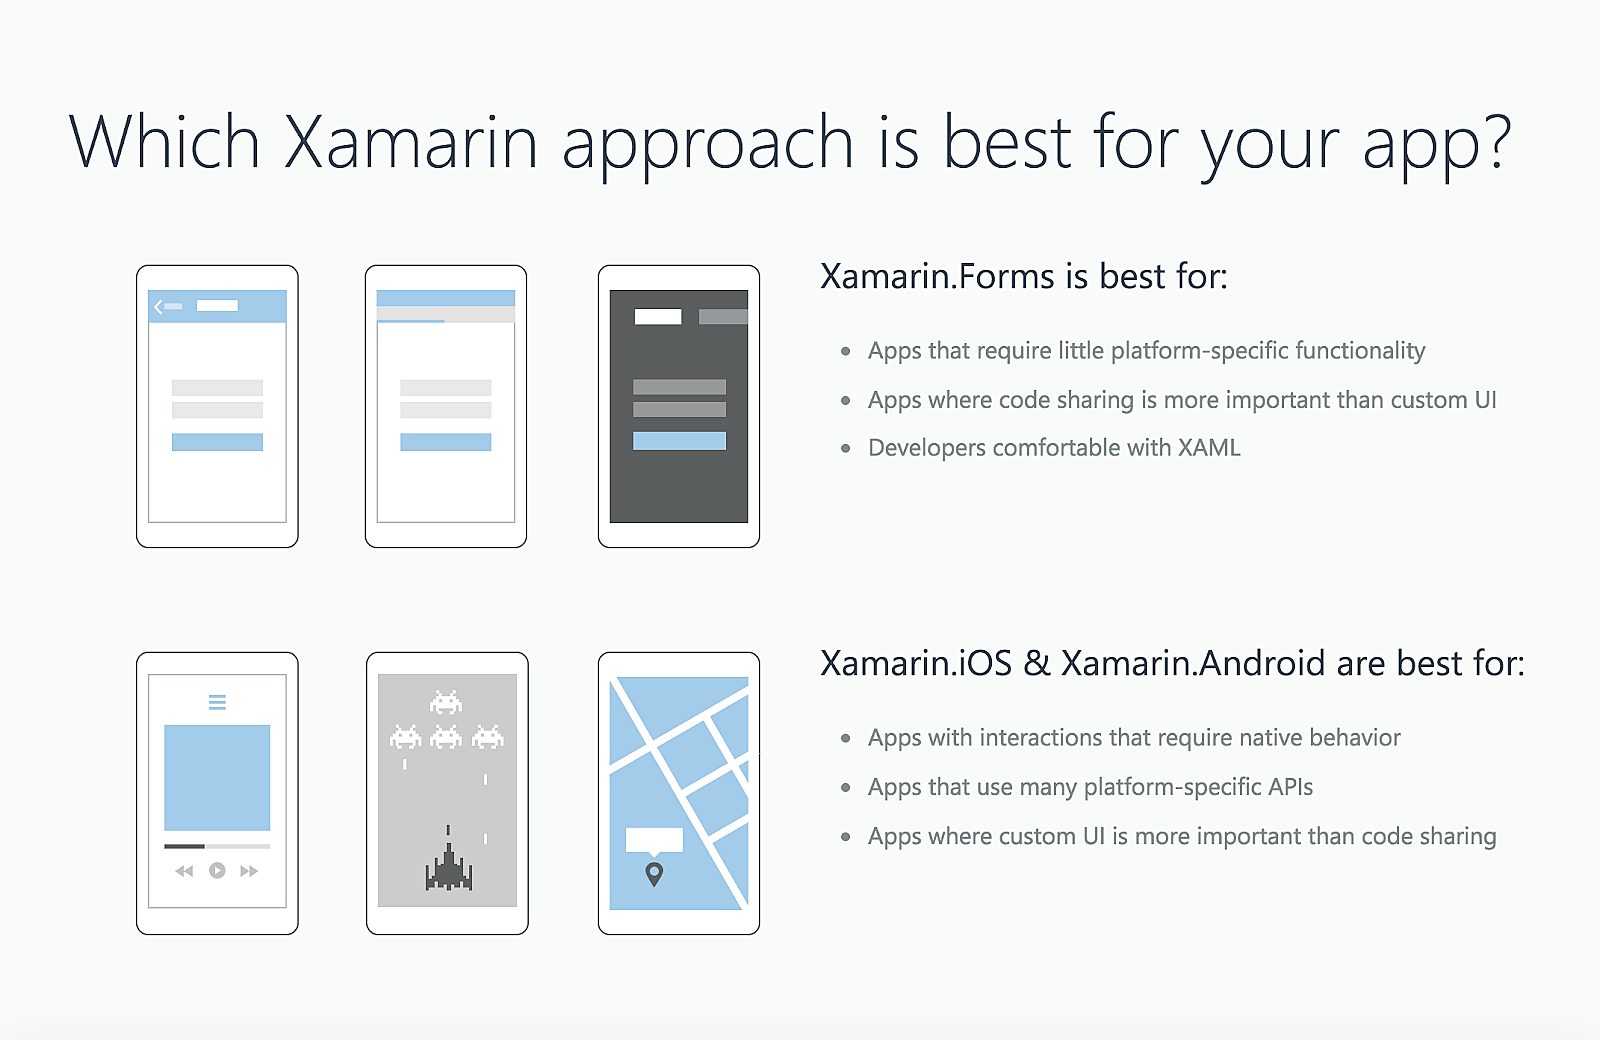 Xamarin.Forms are true hybrid, but only works for the simplest of apps (source: xamarin.com)